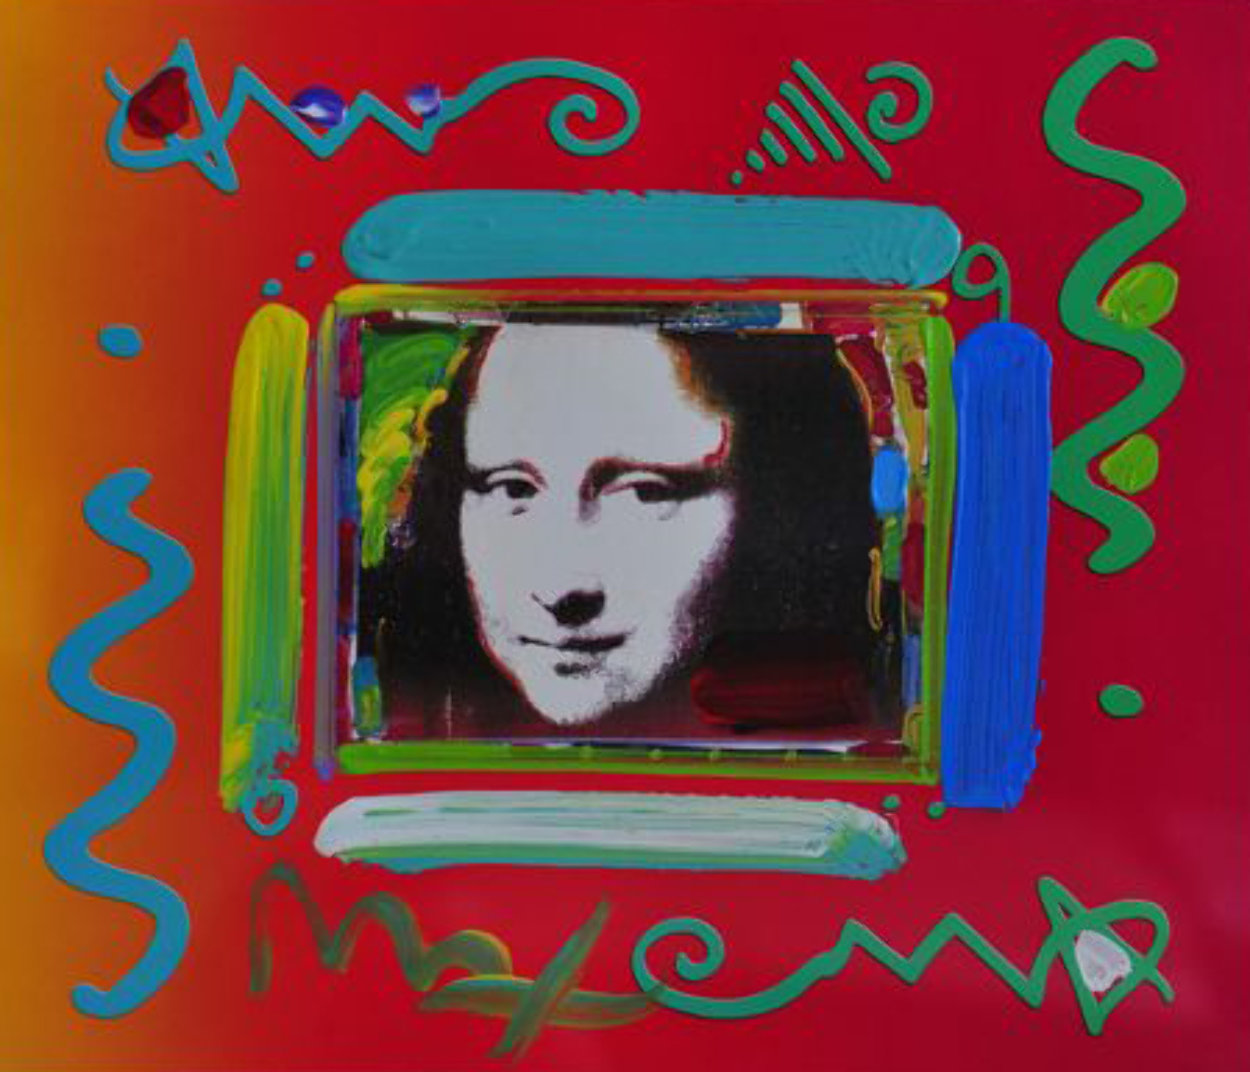 Mona Lisa Collage 2 Unique 12x14 Works on Paper (not prints) by Peter Max